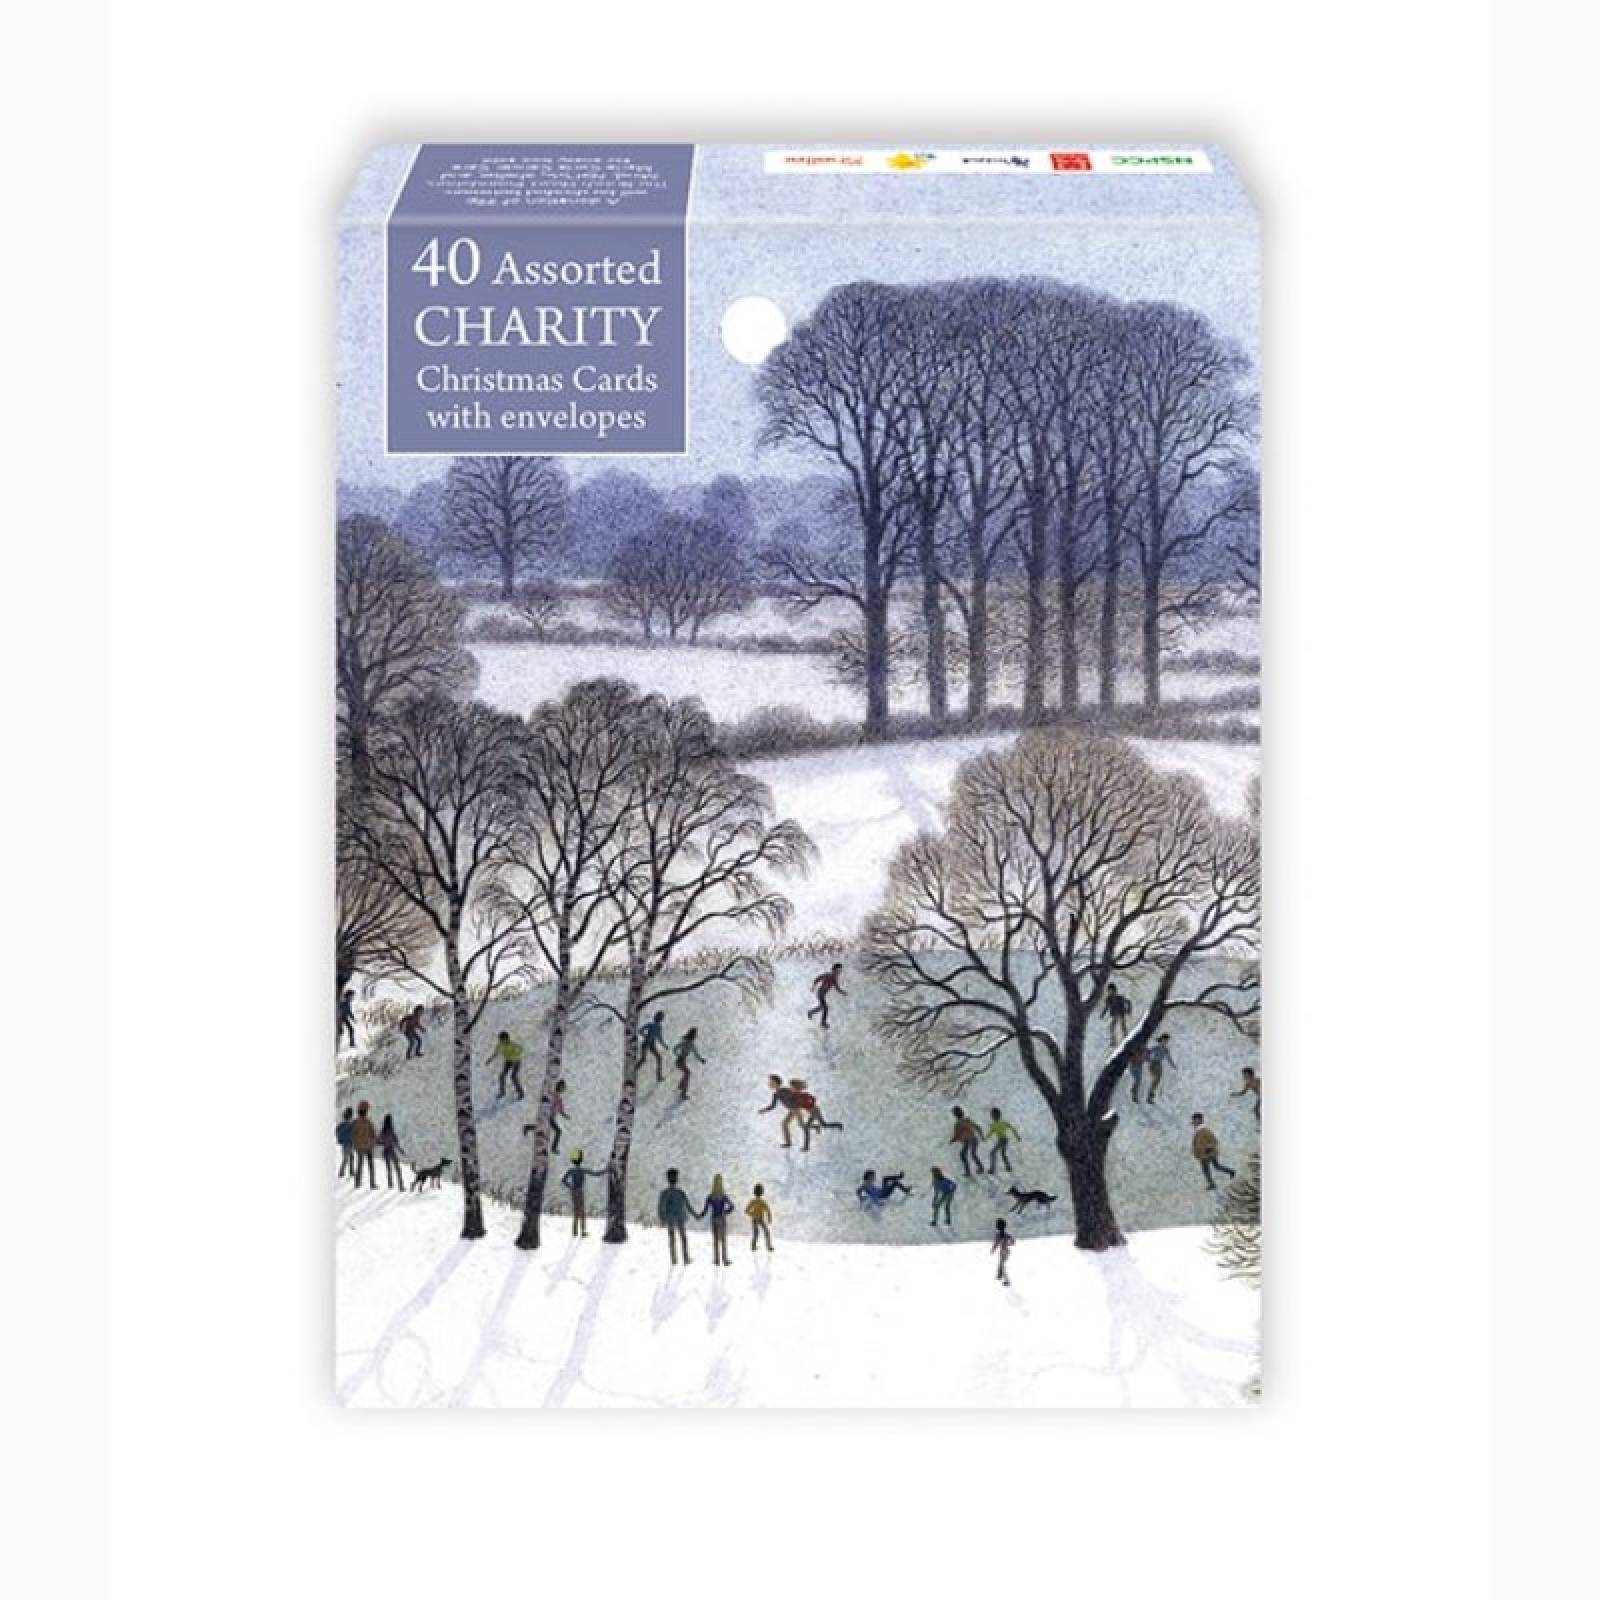 40 Christmas Card Mixed Charity Box By M&G